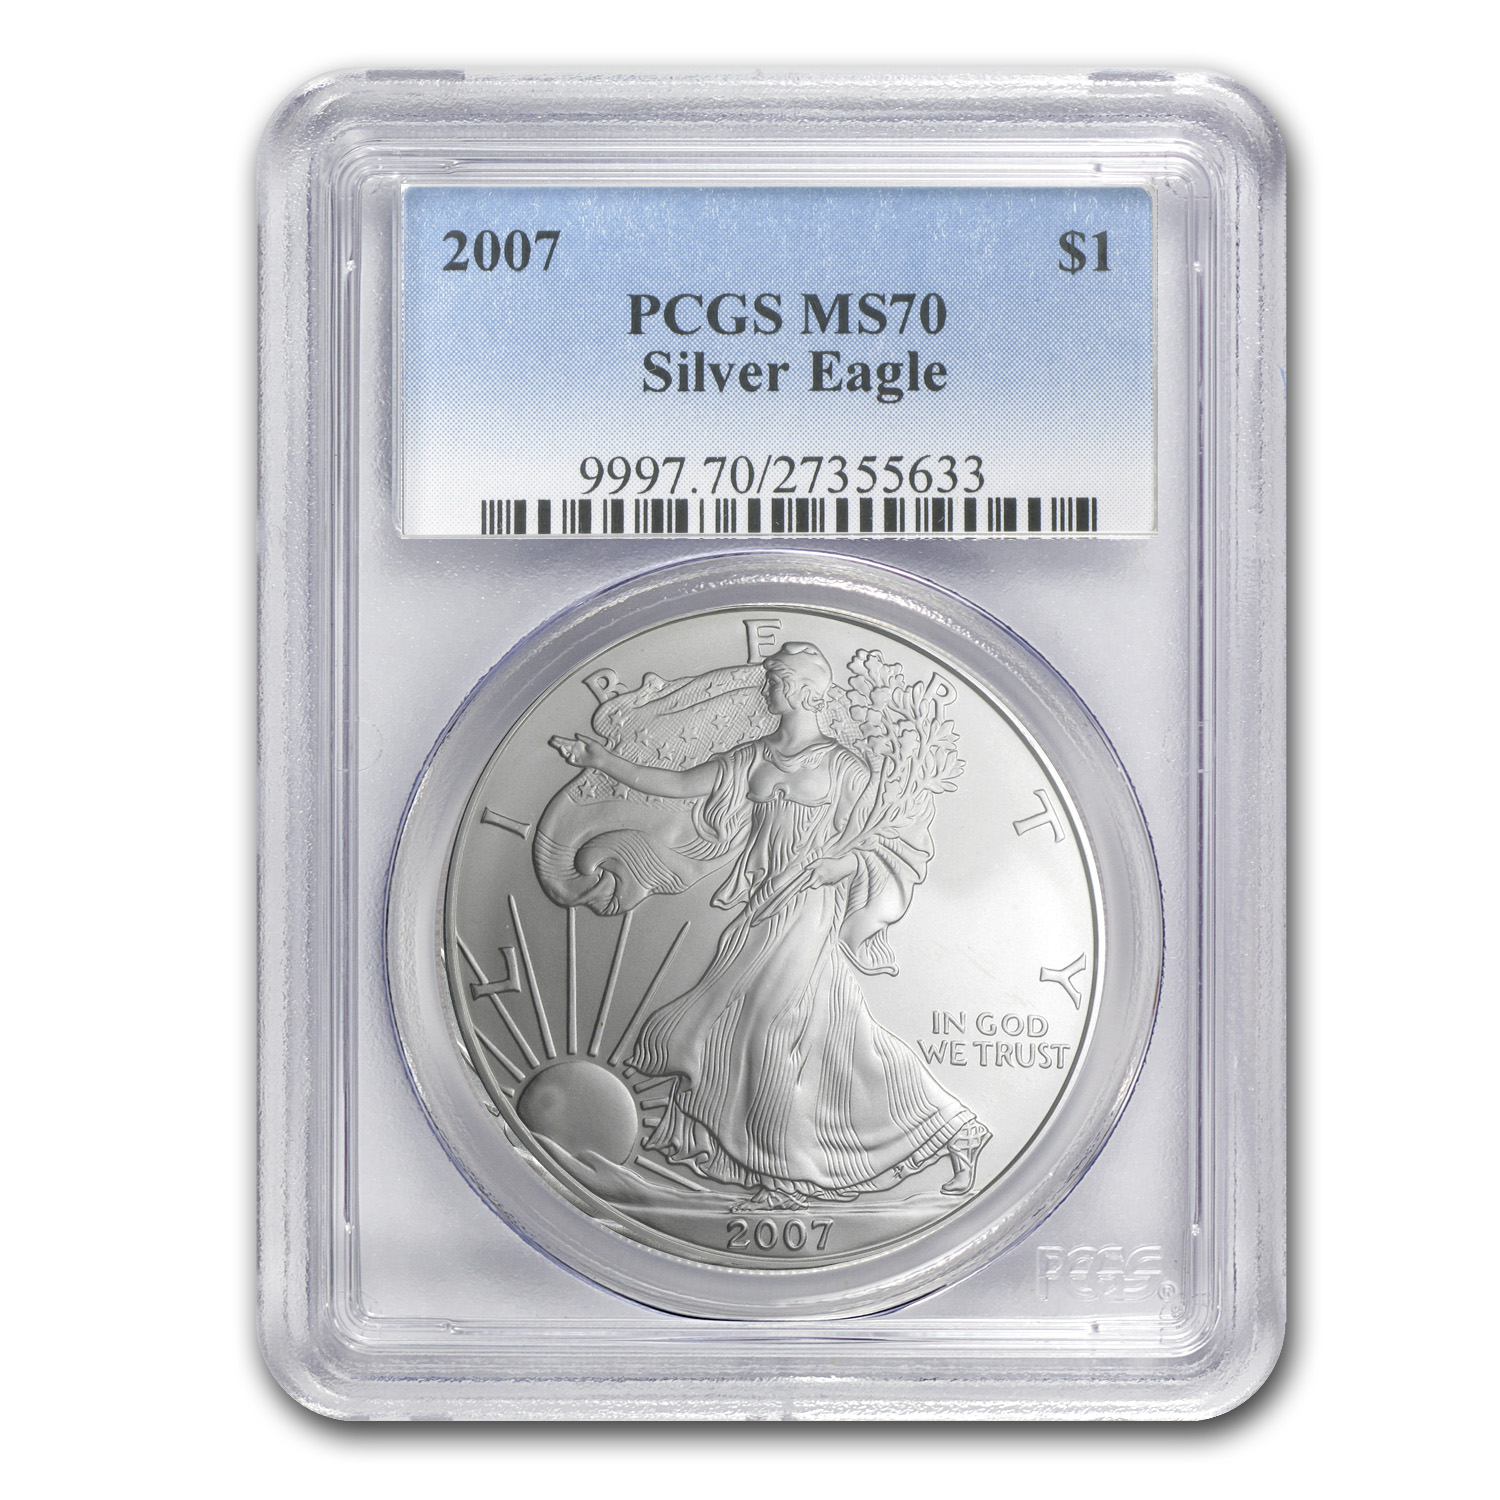 2007 Silver American Eagle MS-70 PCGS (Registry Set)